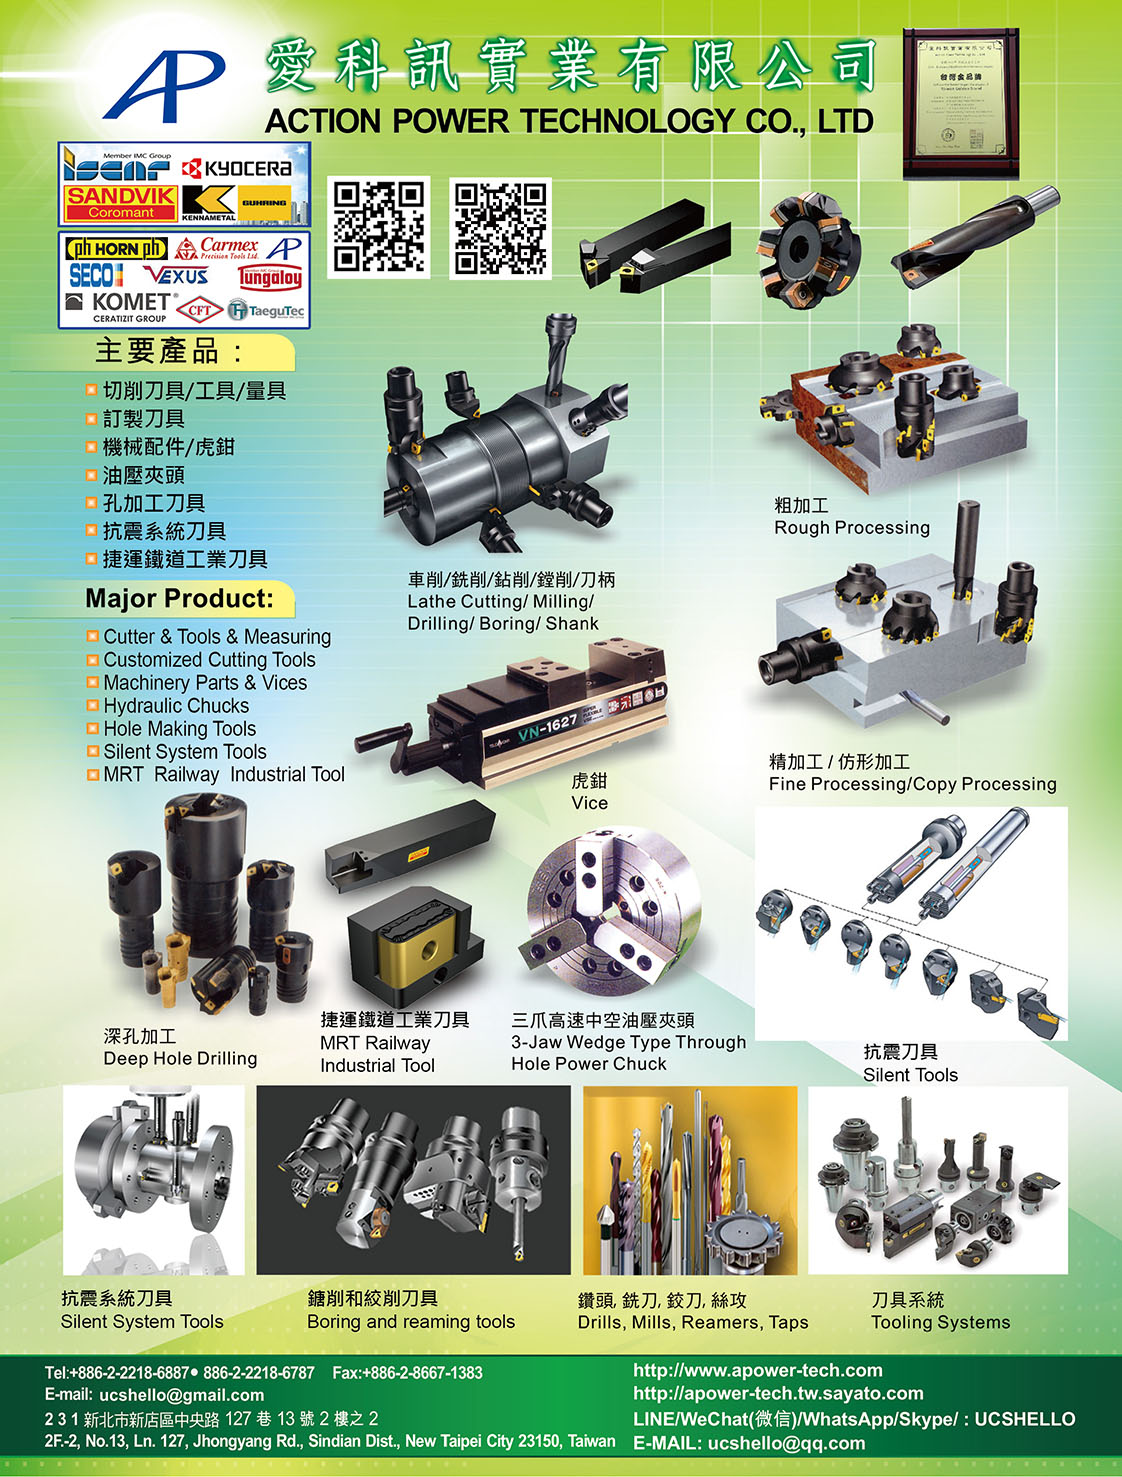 ACTION POWER TECHNOLOGY CO., LTD.